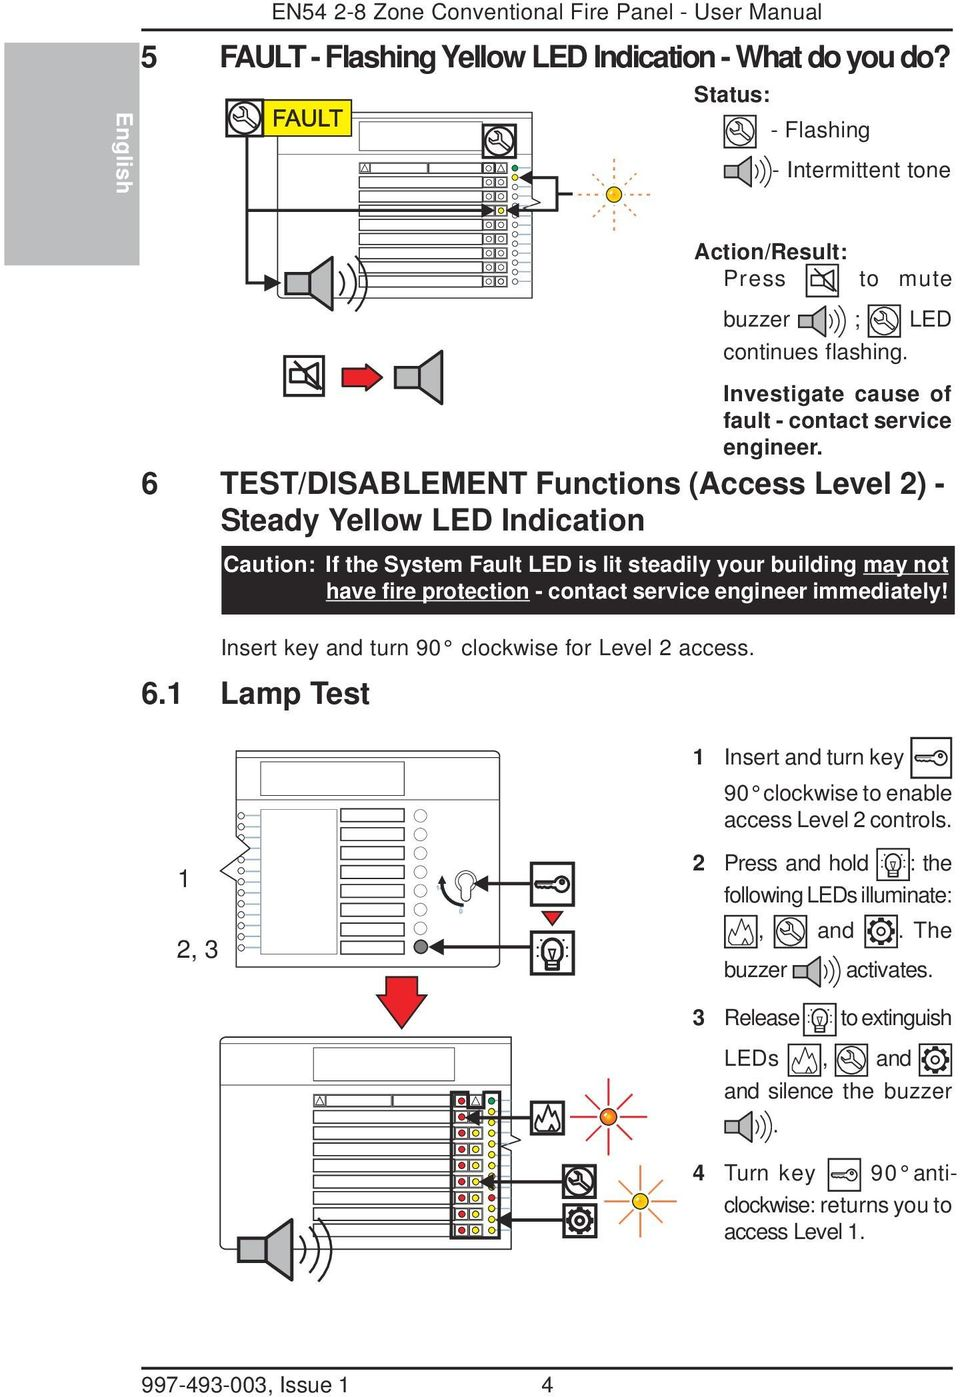 6 TEST/DISABLEMENT Functions (Access Level ) - Steady Yellow LED Indication Caution: If the System Fault LED is lit steadily your building may not have fire protection - contact service engineer